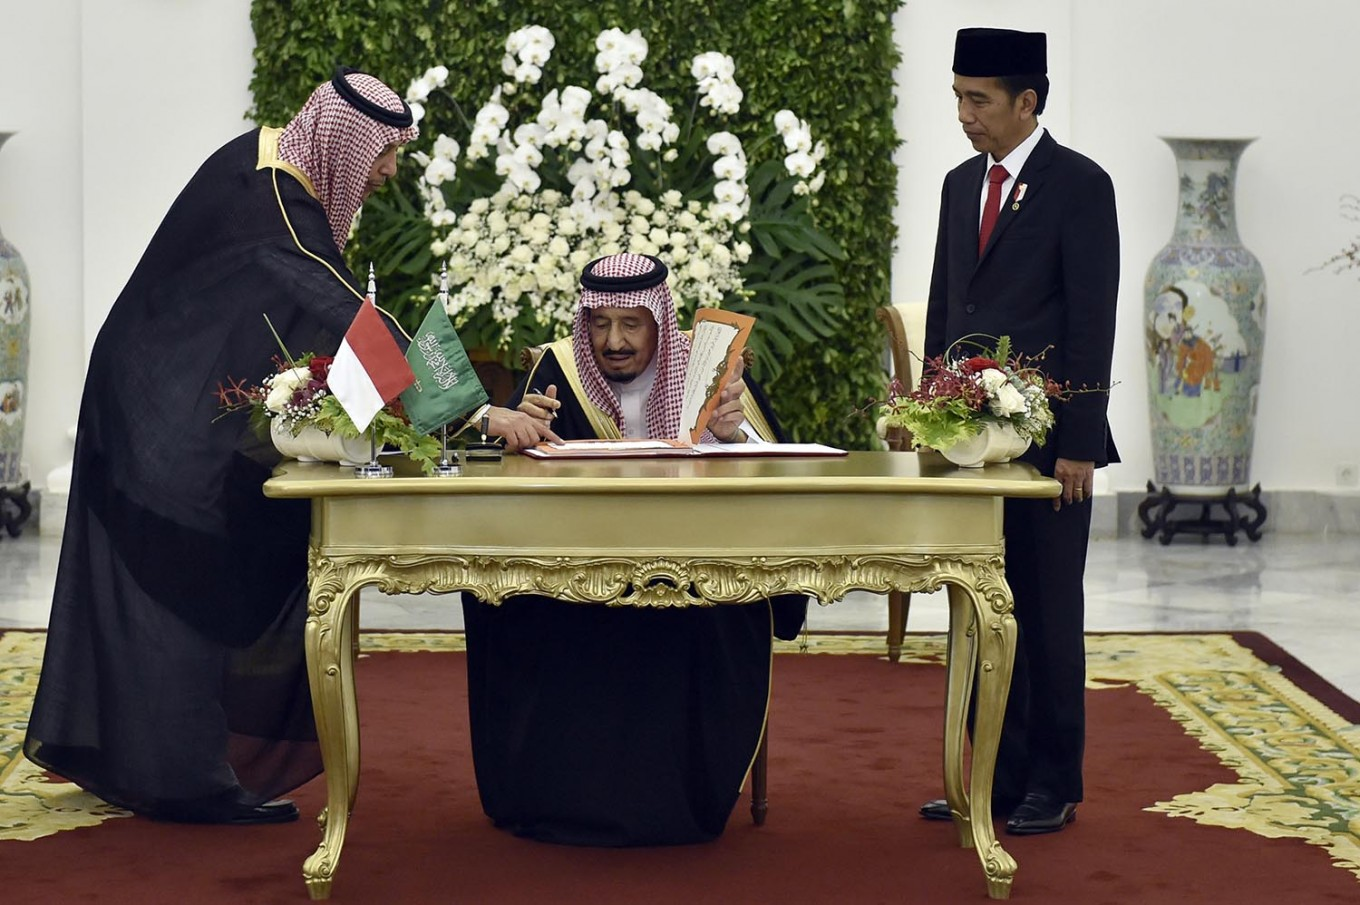 From maids to markets: Indonesia still faces challenges engaging with the Middle East